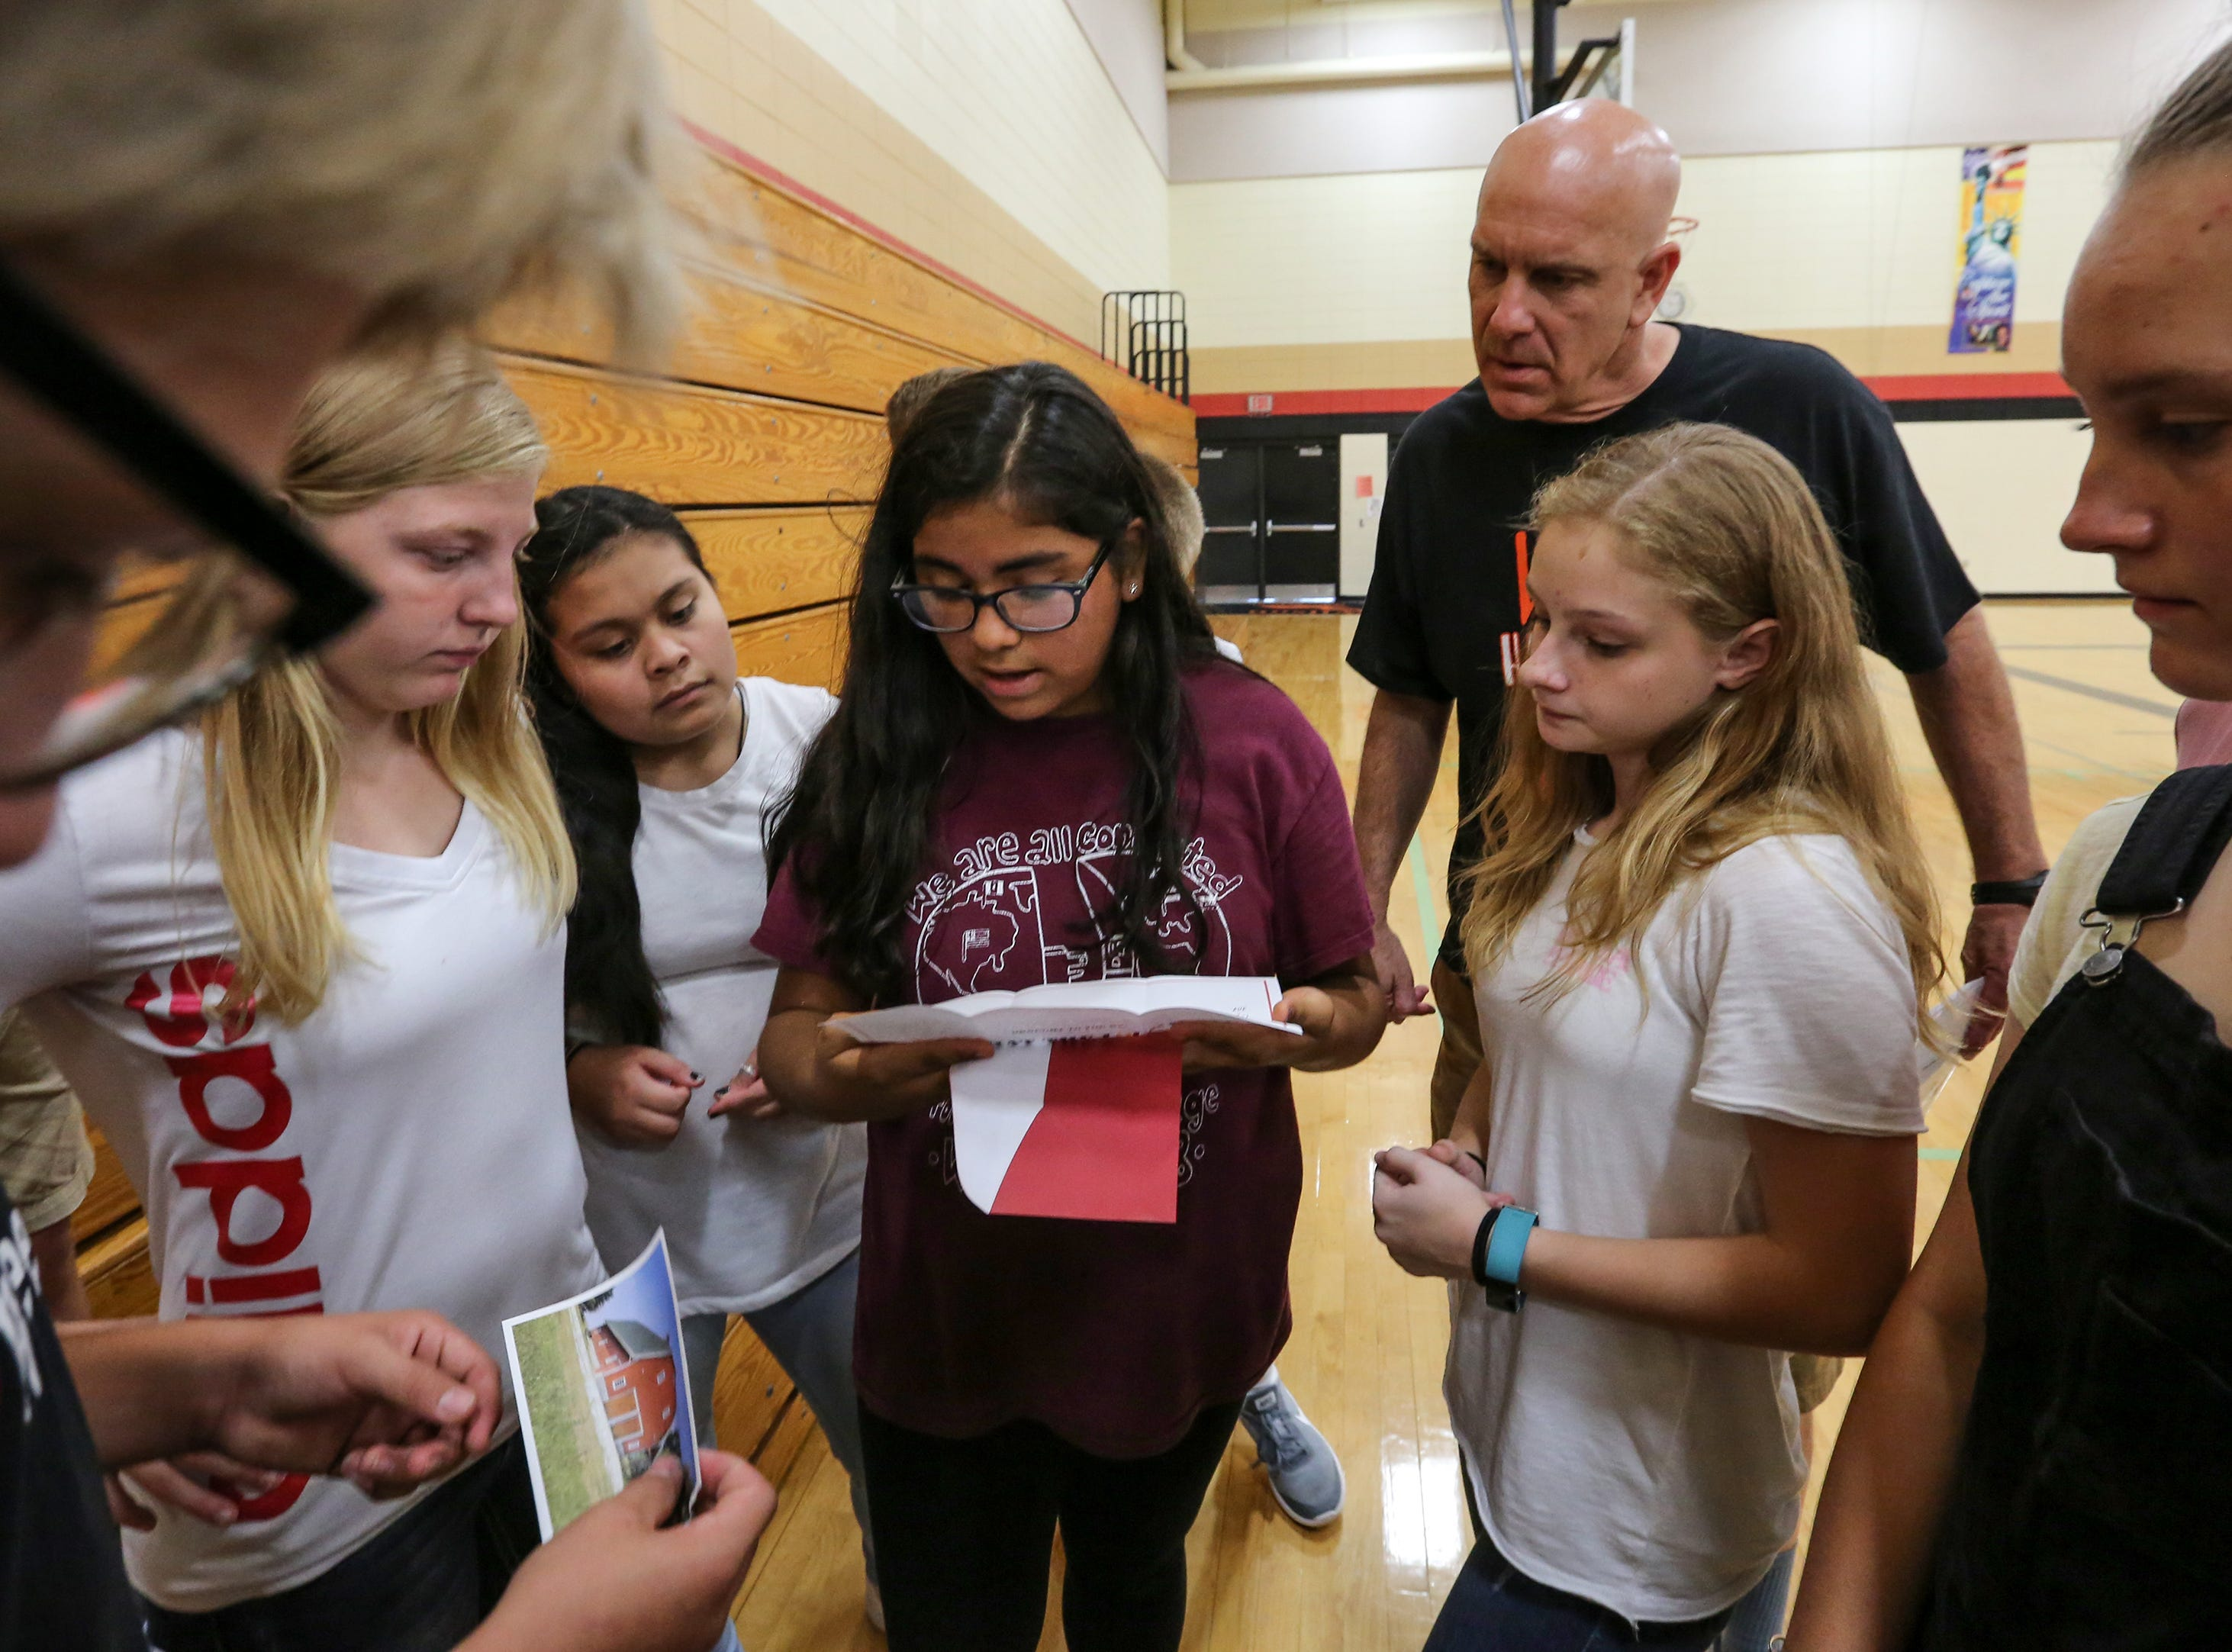 Cecilia Aldrich reads a clue to her classmates in Jeff Cavanaugh's 8th grade homeroom during an escape room activity on the first day of school at Wilson Junior High Tuesday, September 4, 2018, in Manitowoc, Wis. Local escape room What the Lock coordinated the clues for the students. Josh Clark/USA TODAY NETWORK-Wisconsin